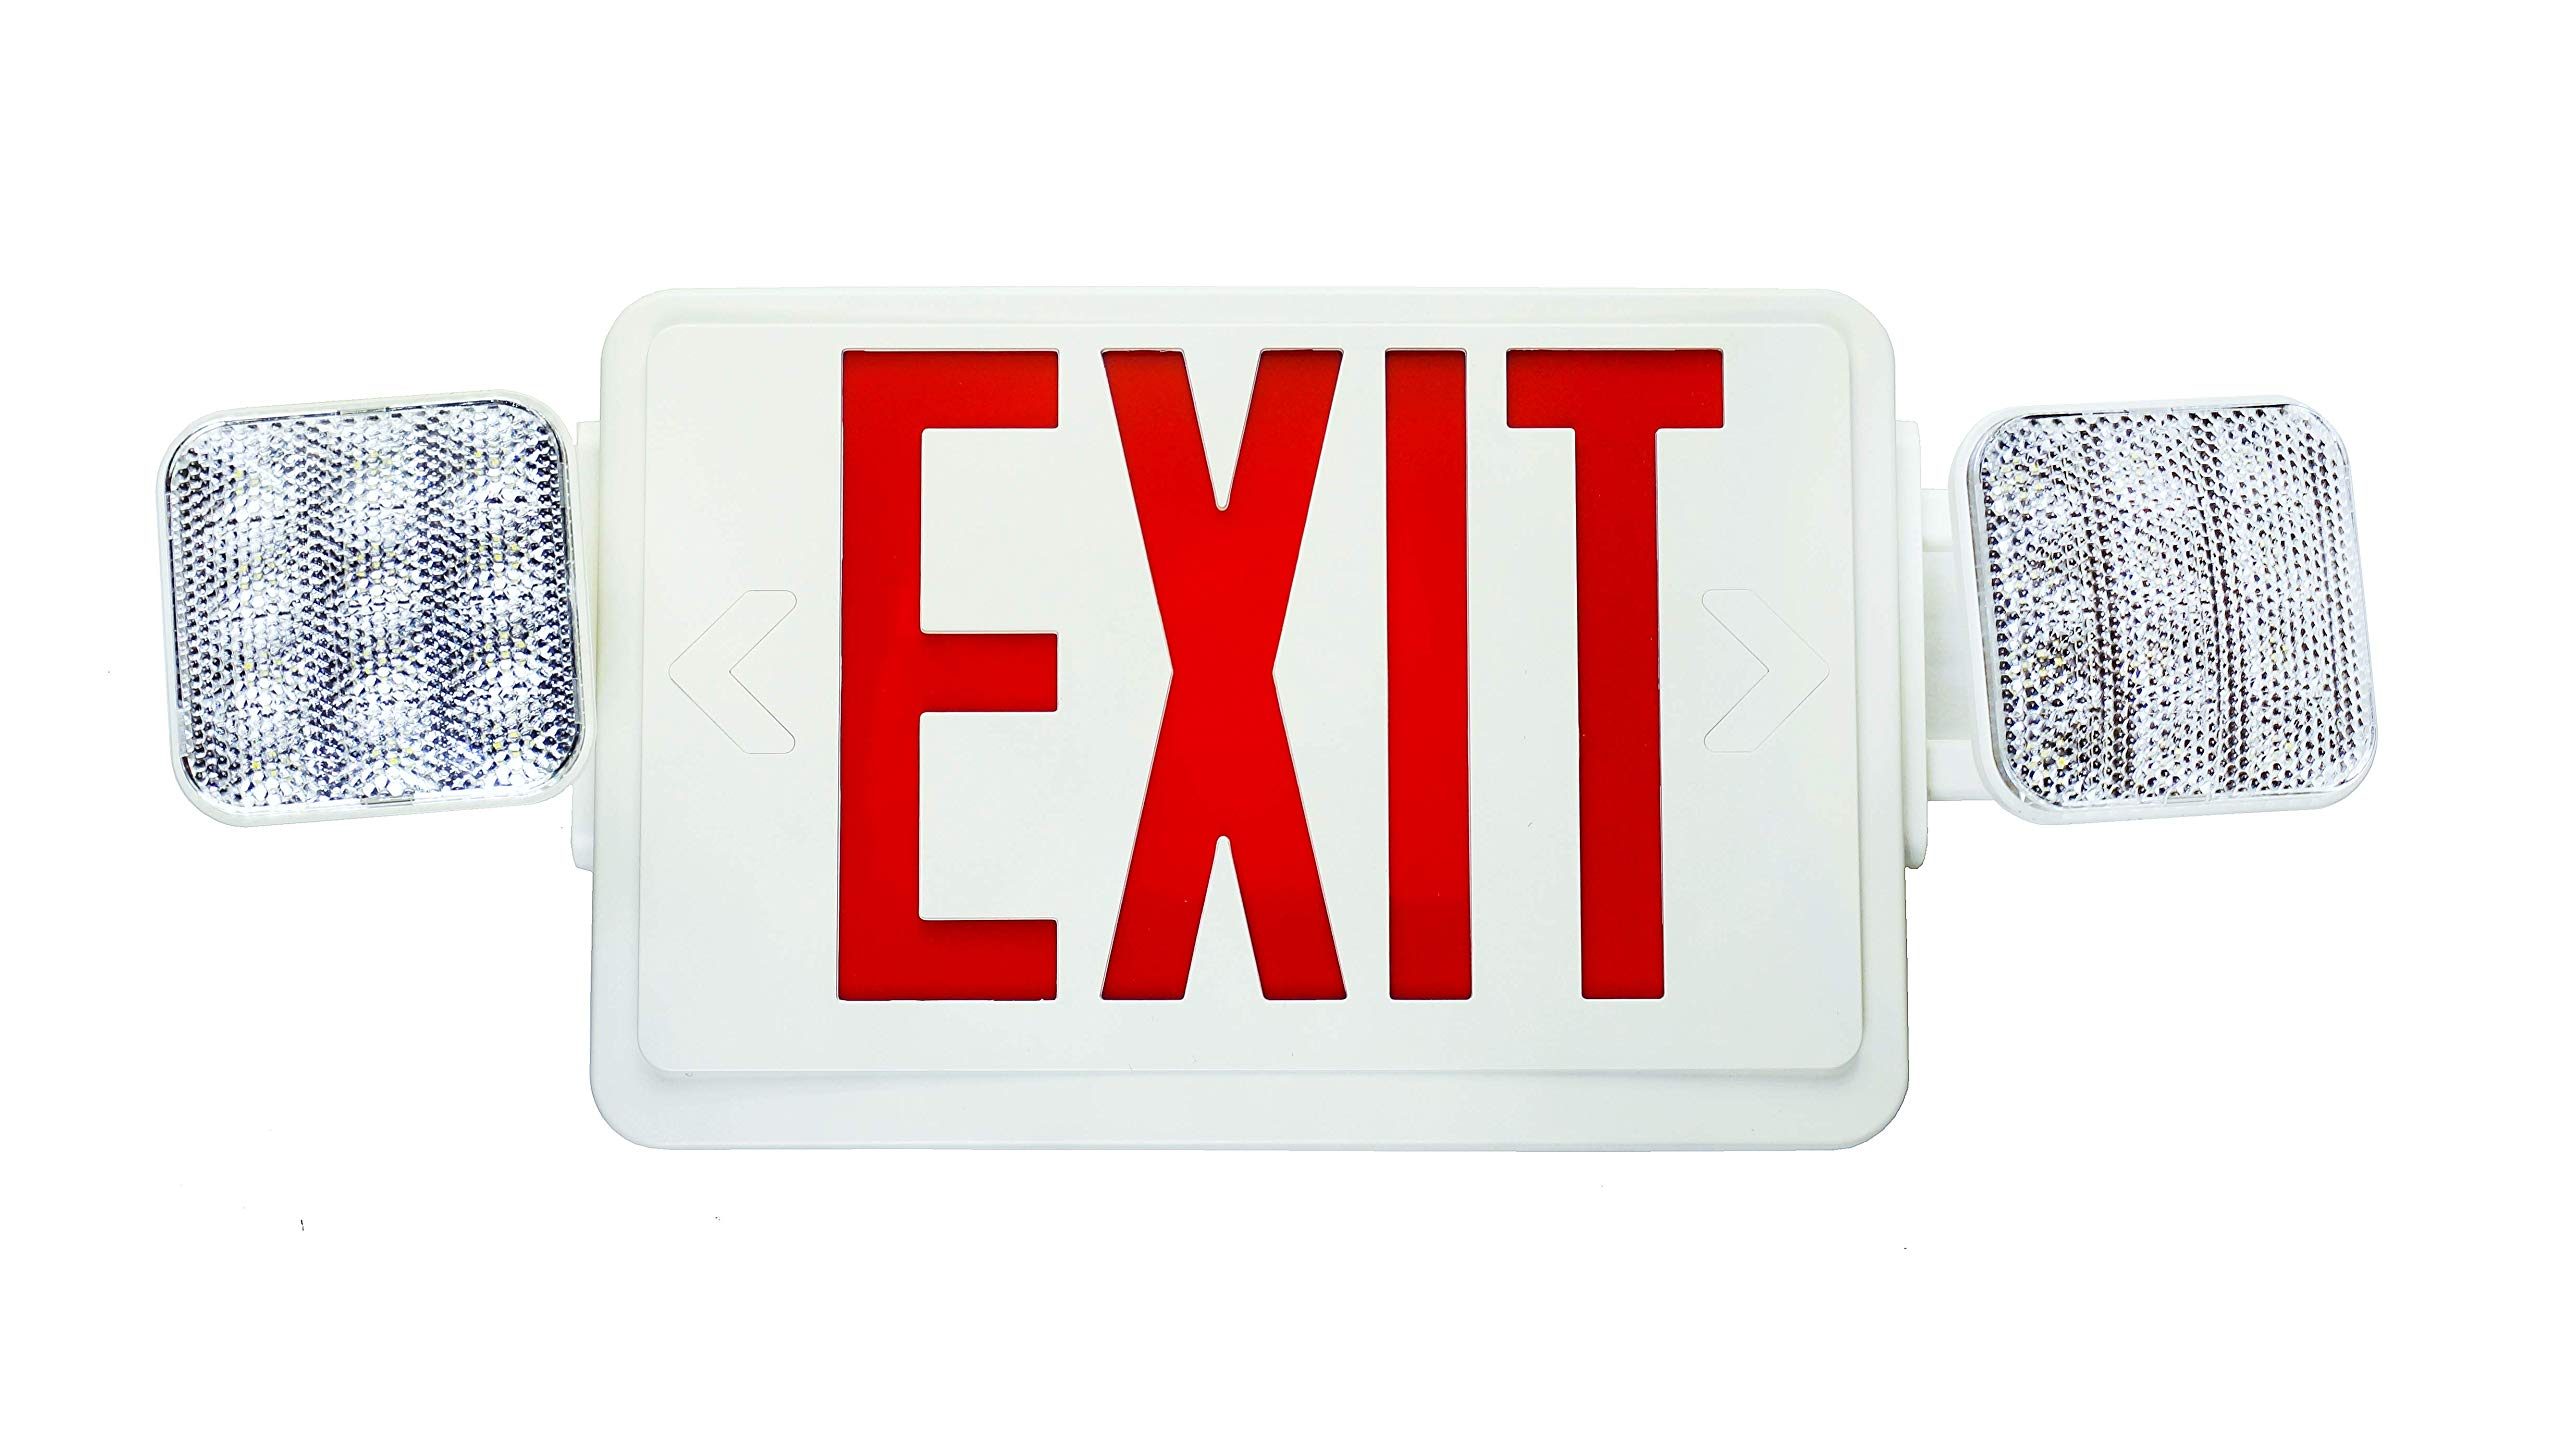 NICOR Lighting LED Emergency Exit Sign with Dual Adjustable LED Heads, White with Red Lettering  (ECL1-10-UNV-WH-R-2)